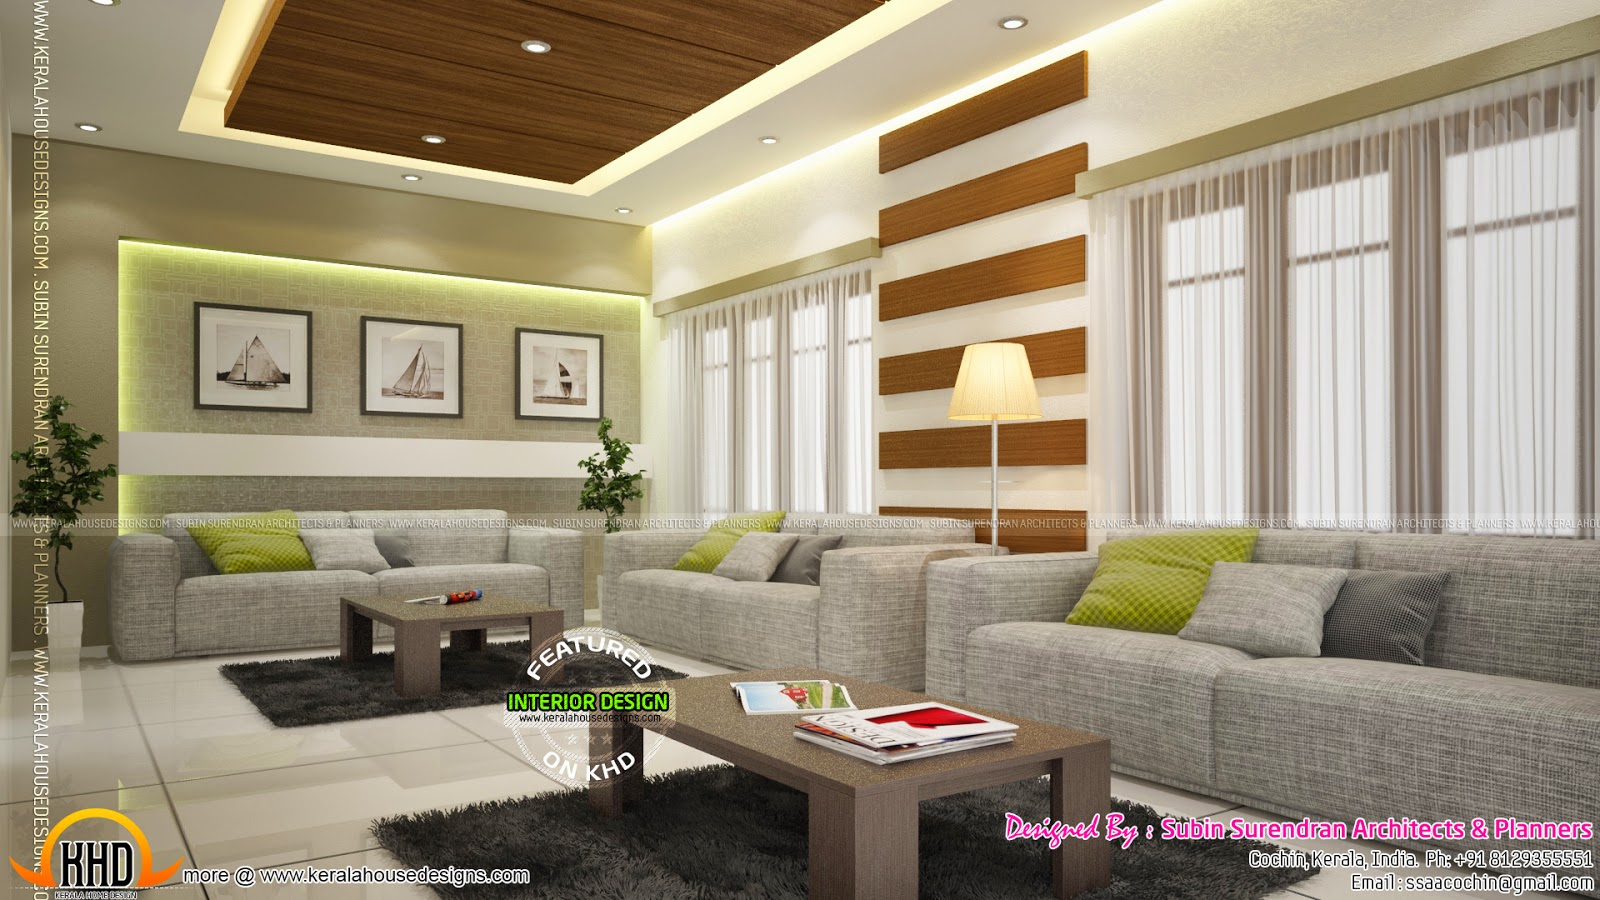 Beautiful home interior designs kerala home design and for House and home decorating